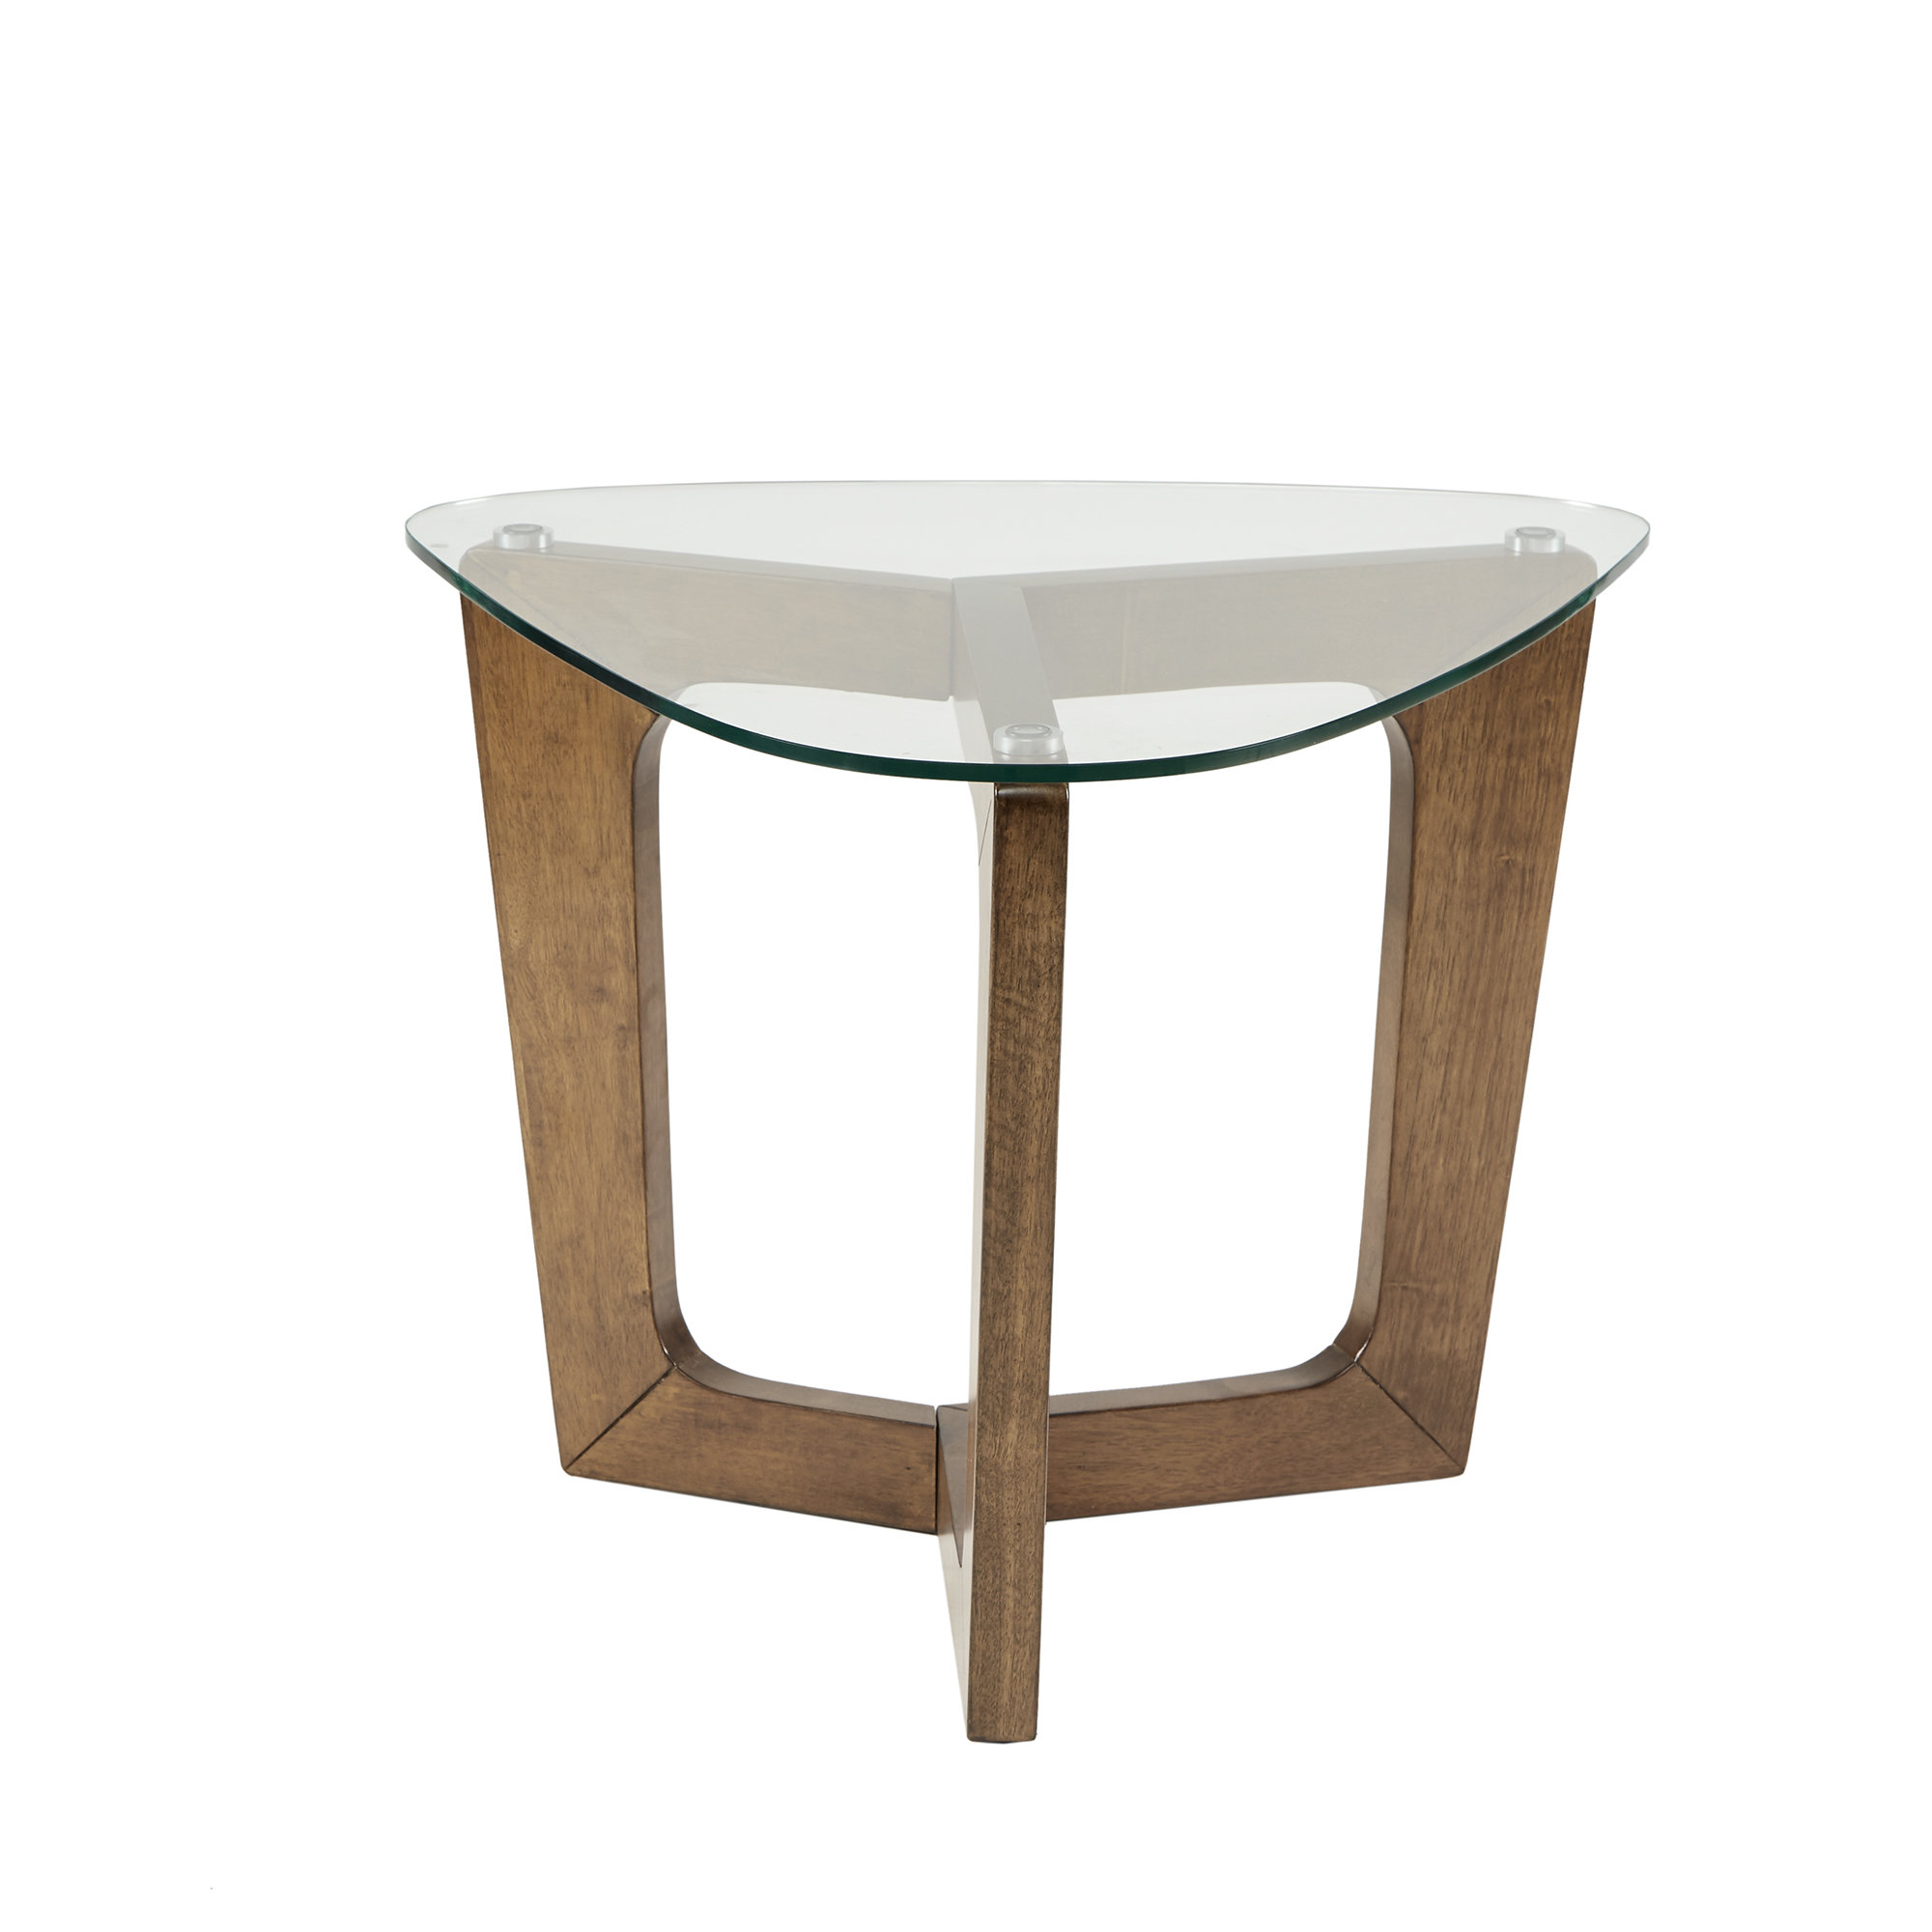 roark end table eakes mirrored pyramid accent mahogany nest tables large floor lamp small kitchen couch glass entry country threshold round coffee nesting outdoor patio with